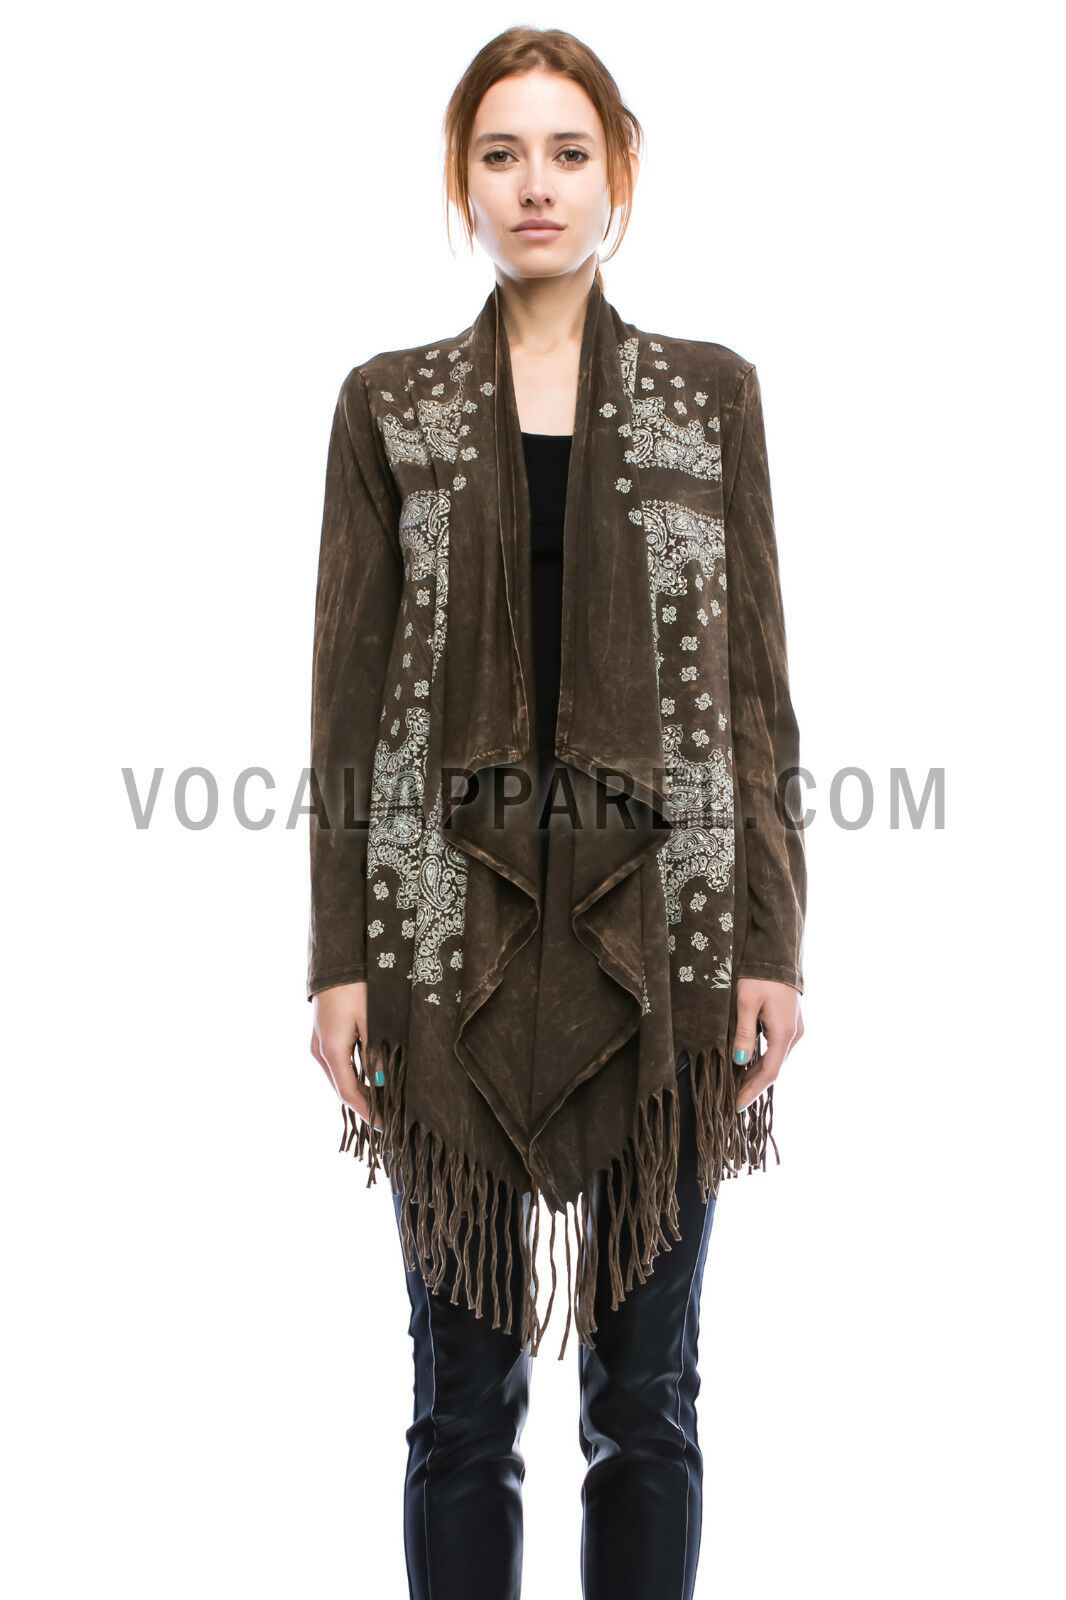 Vocal Mineral Wash Gold Studs Cross Fringe Duster Jacket Cardigan ...